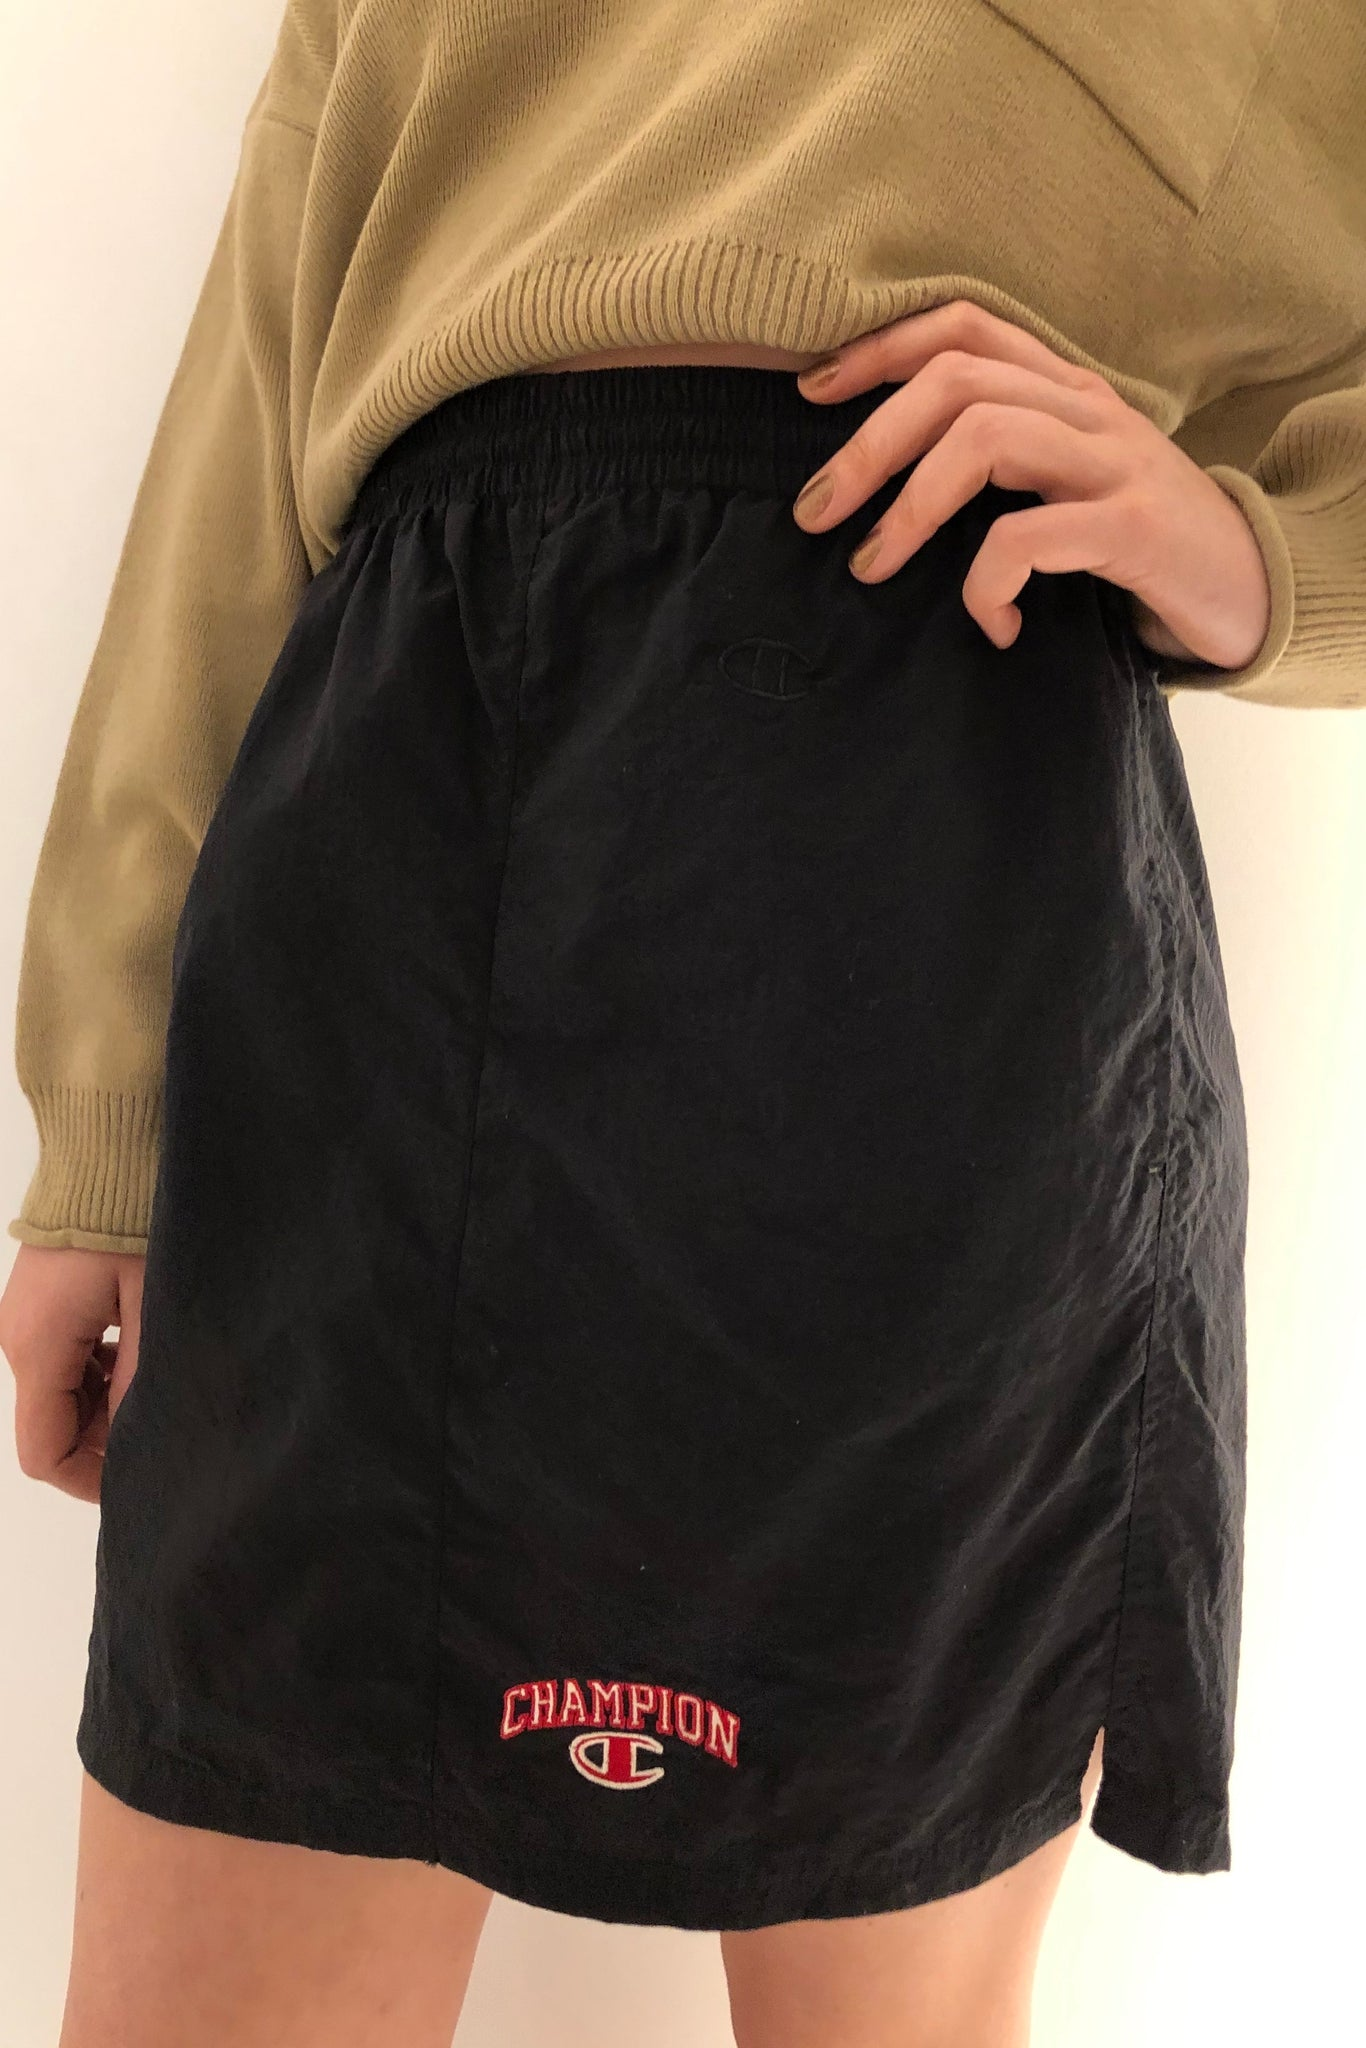 Vintage Re-Work Champion Skirt